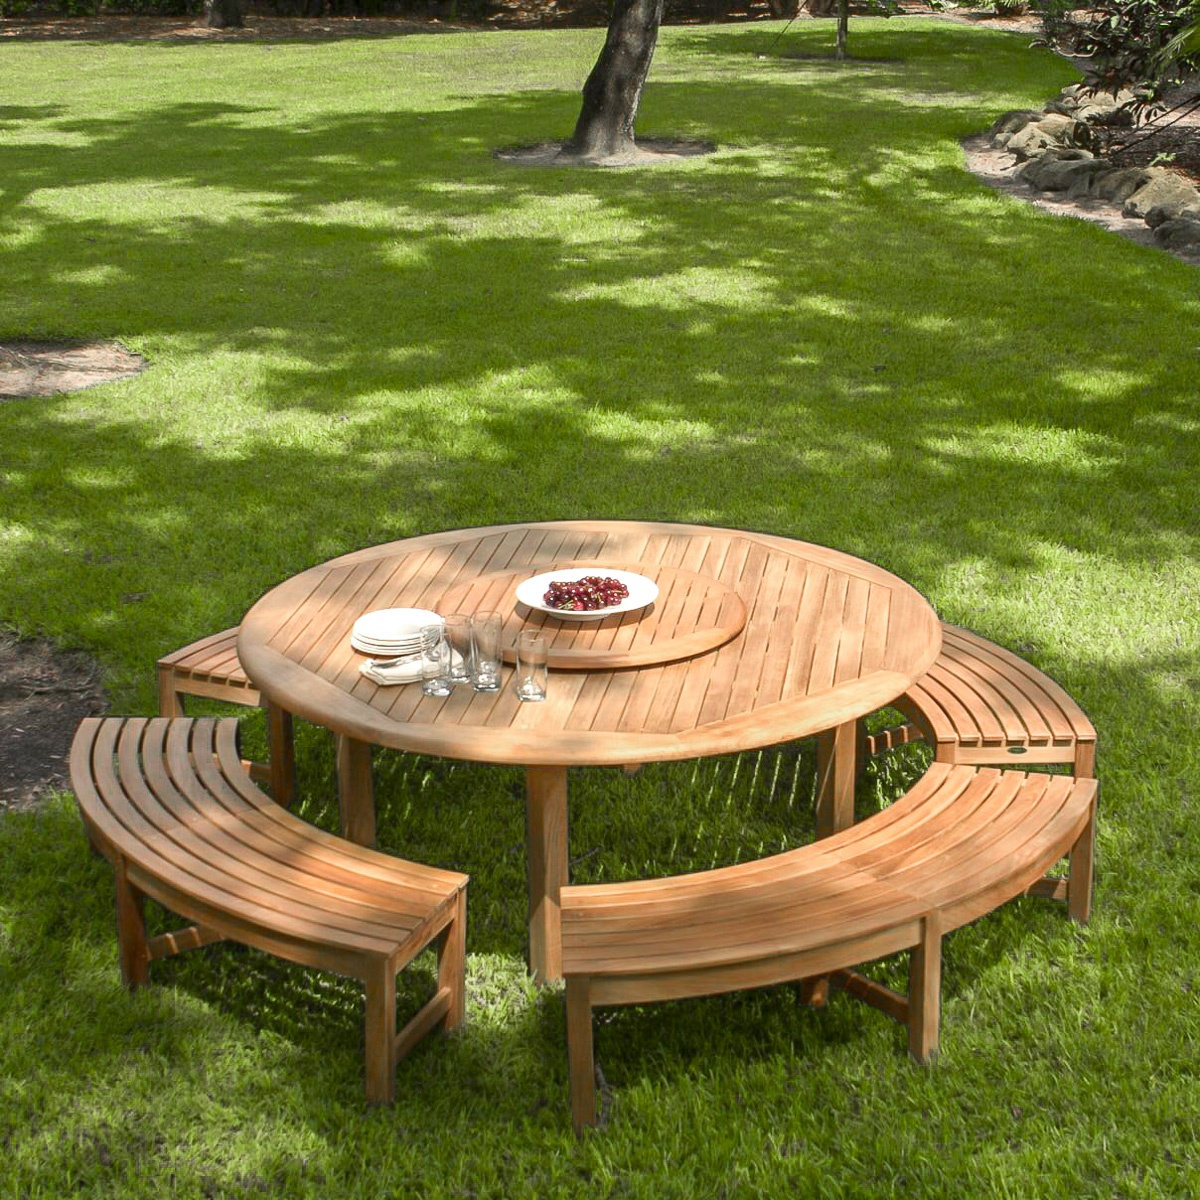 Teak Garden Benches Round Curved Westminster Teak Furniture